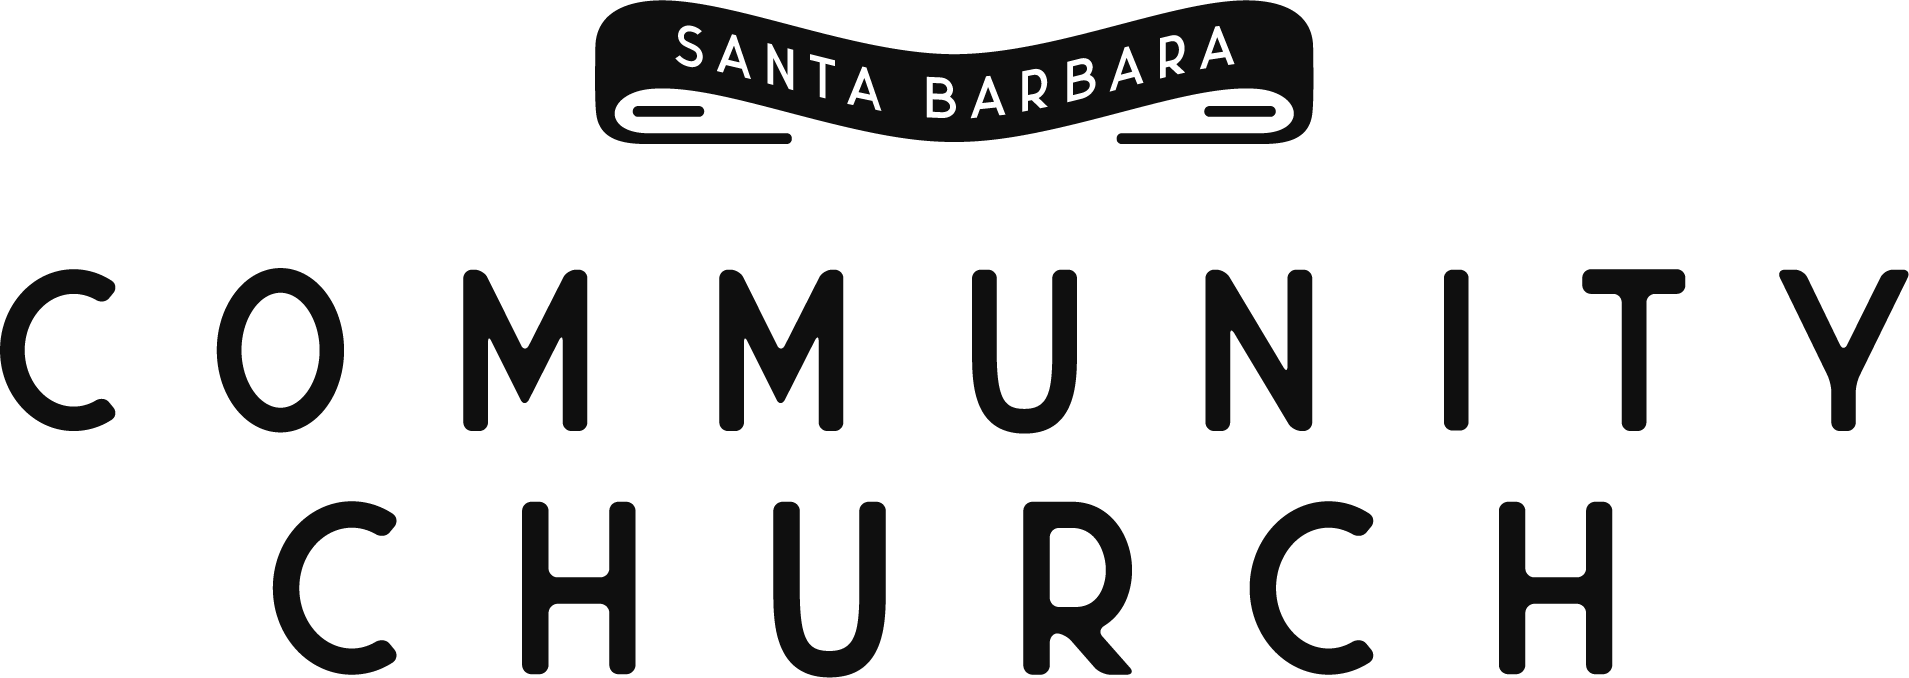 Santa Barbara Community Church